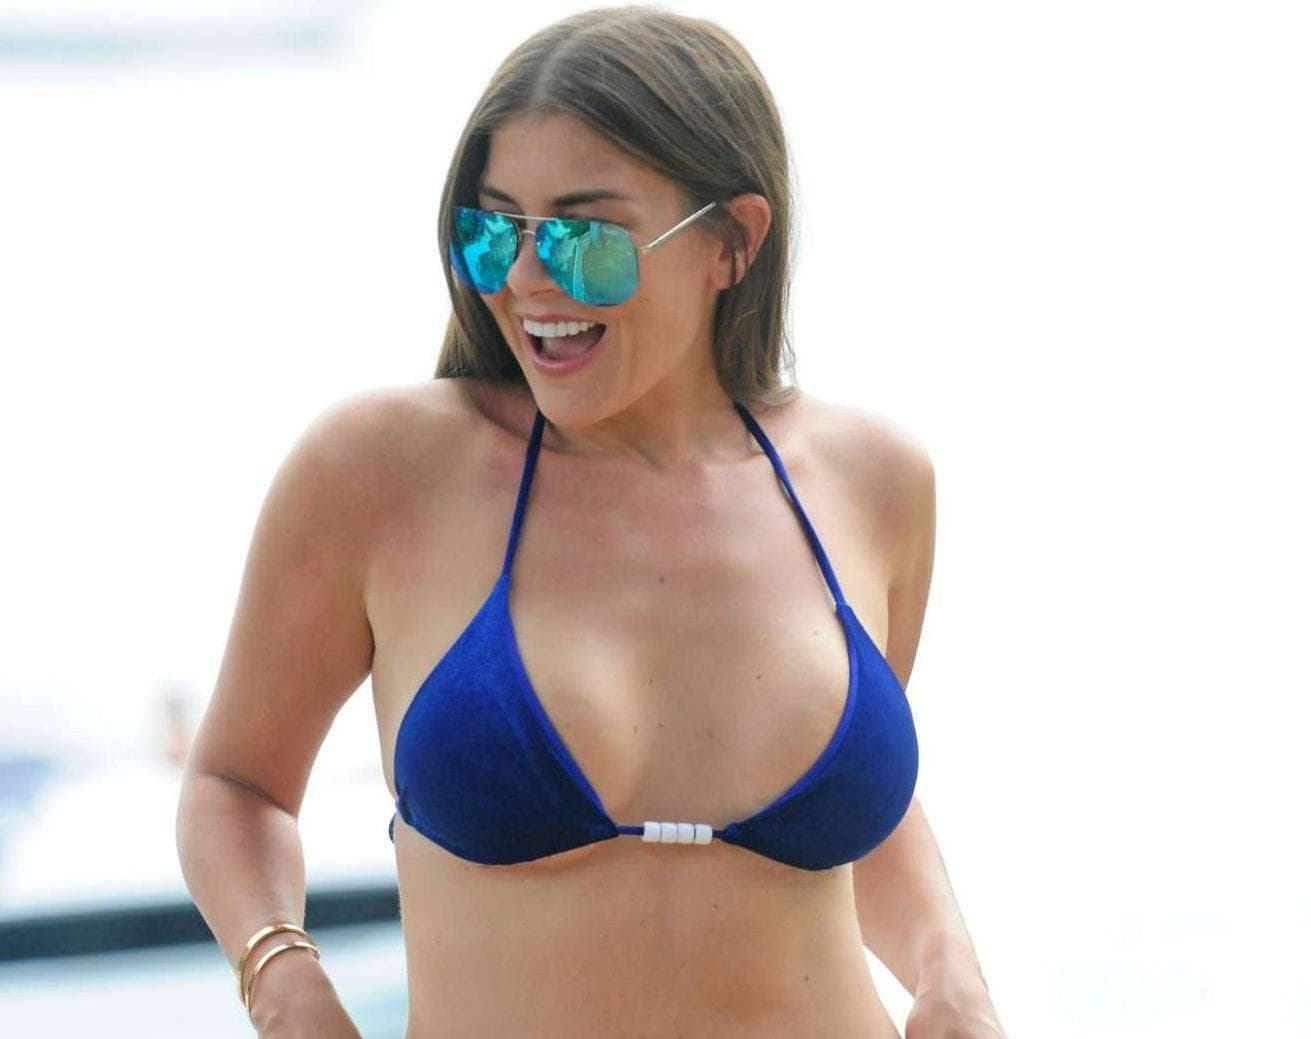 Big brothers imogen thomas boob job